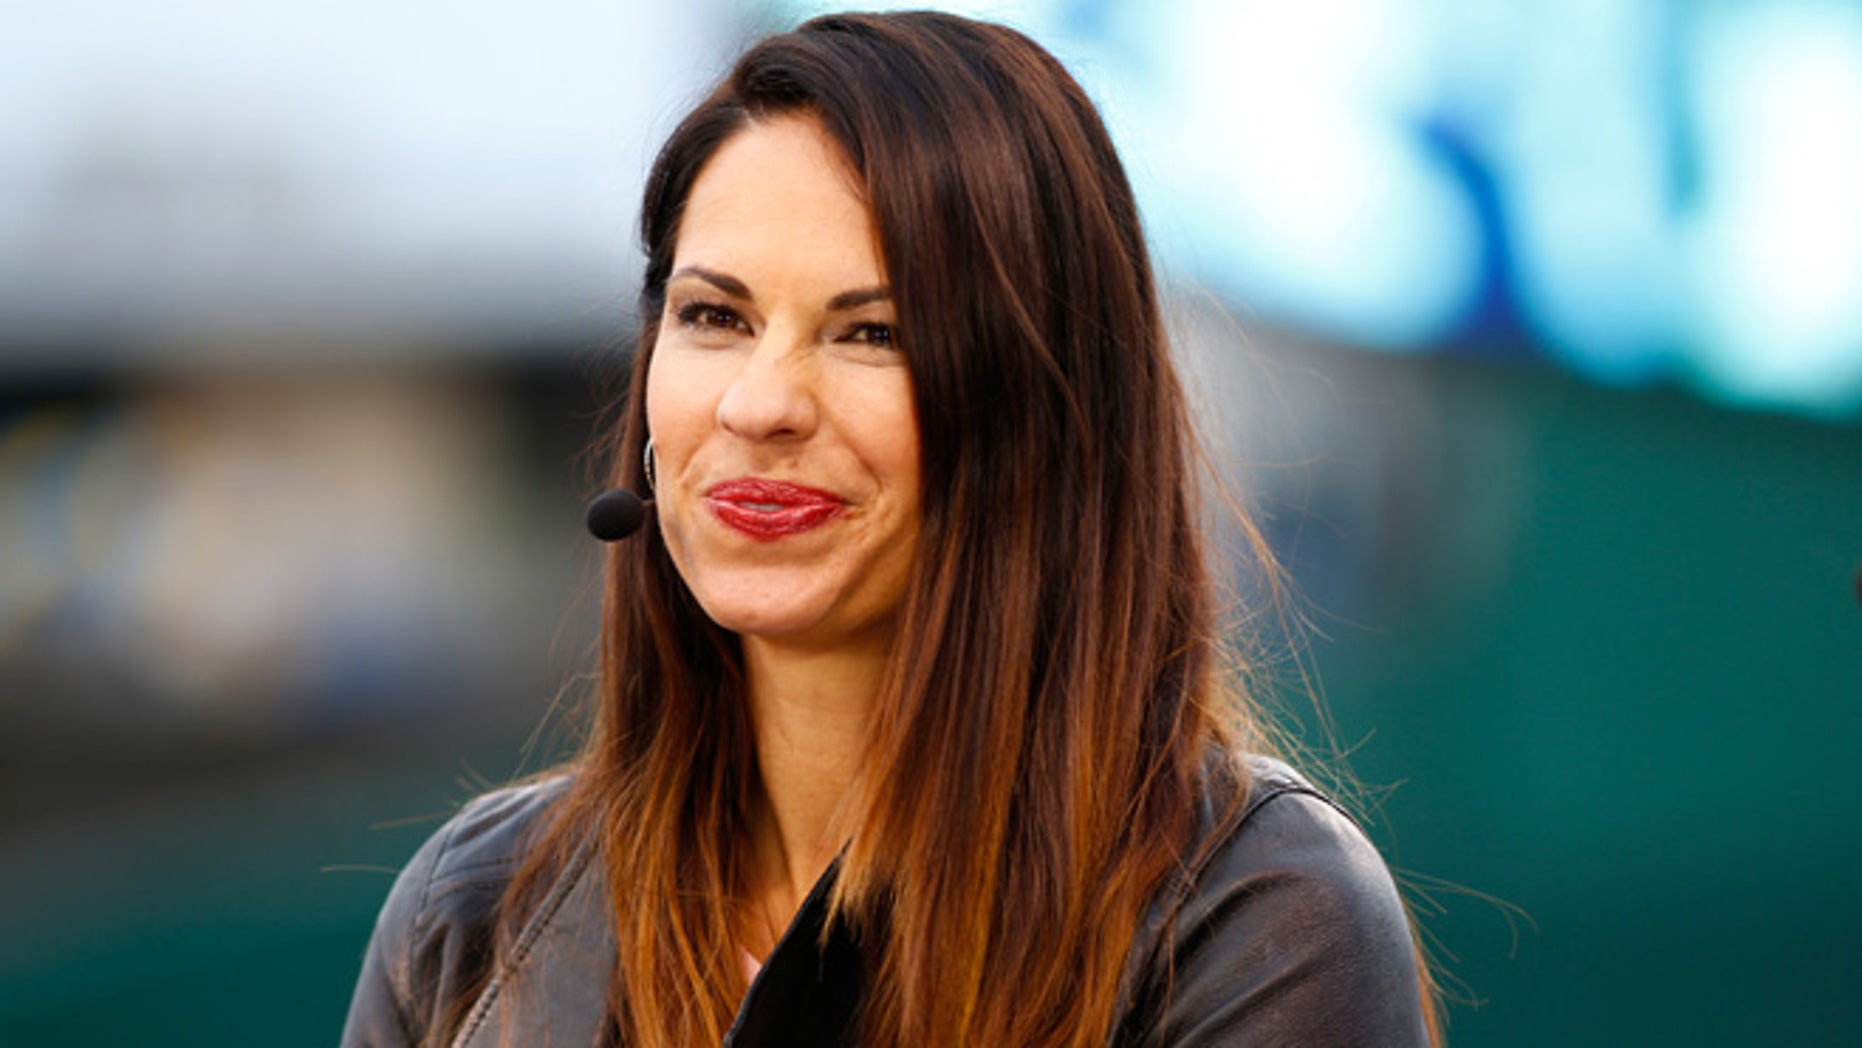 Jessica Mendoza of ESPN speaks on set the day before Game 1 of the 2015 World Series between the Royals and Mets at Kauffman Stadium on October 26, 2015 in Kansas City, Missouri.